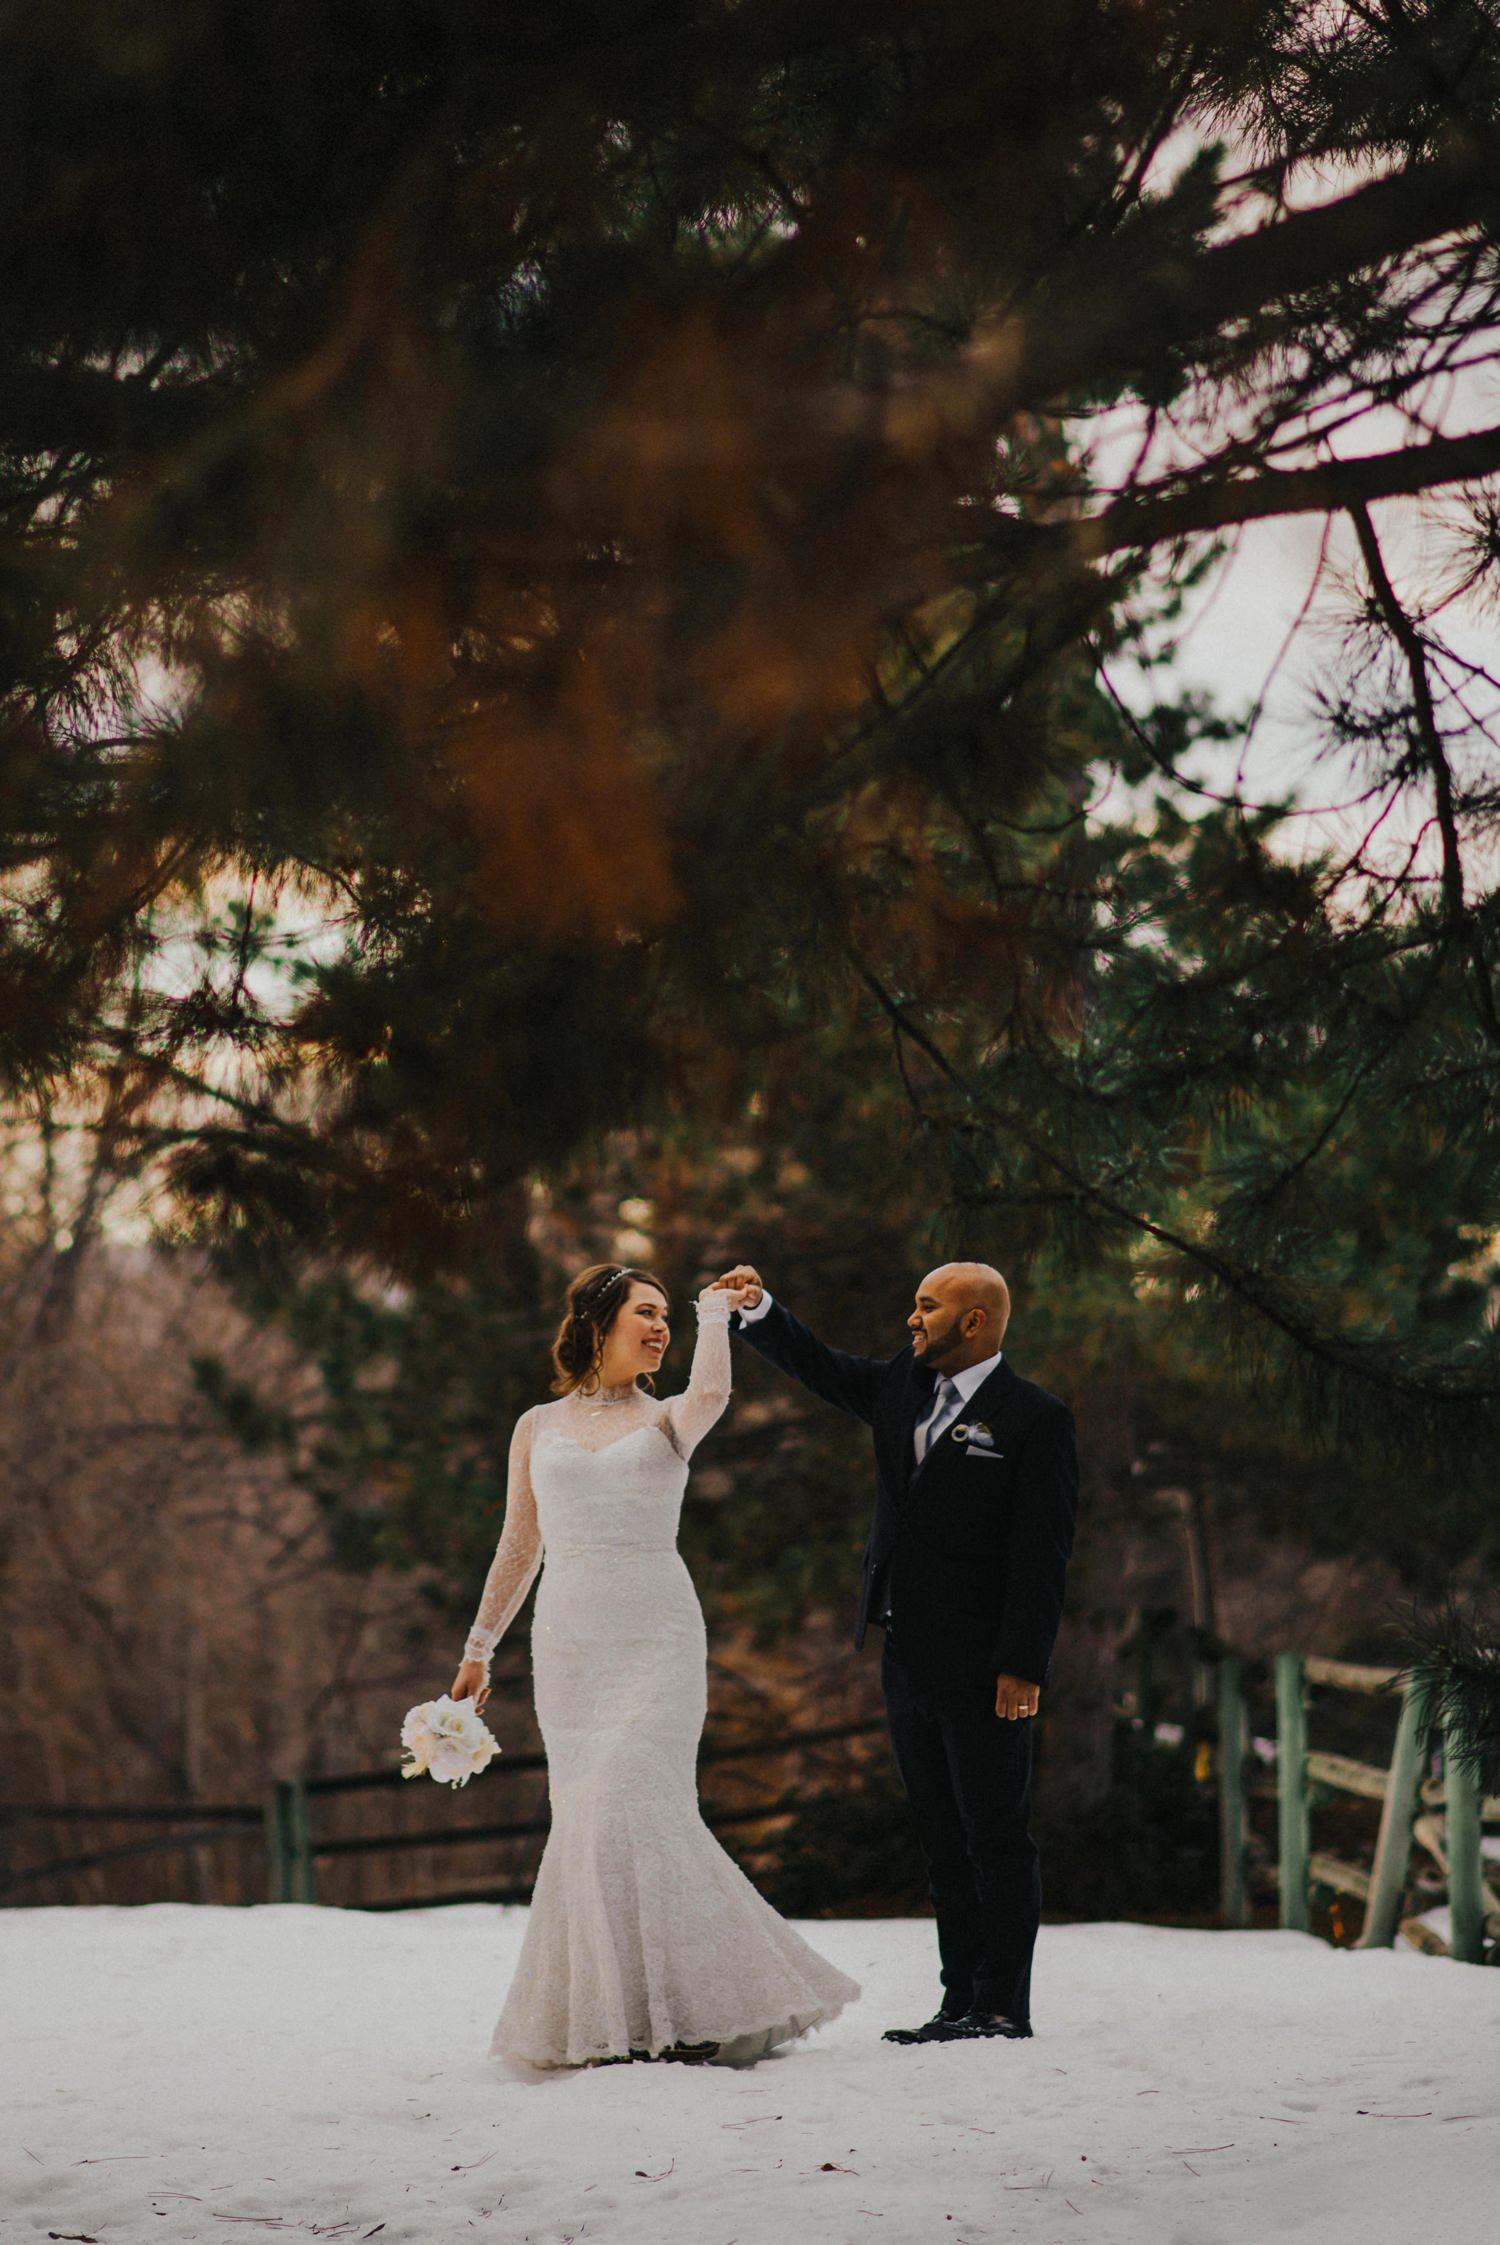 Kelowna Winter Wedding - Joelsview Photography_0107